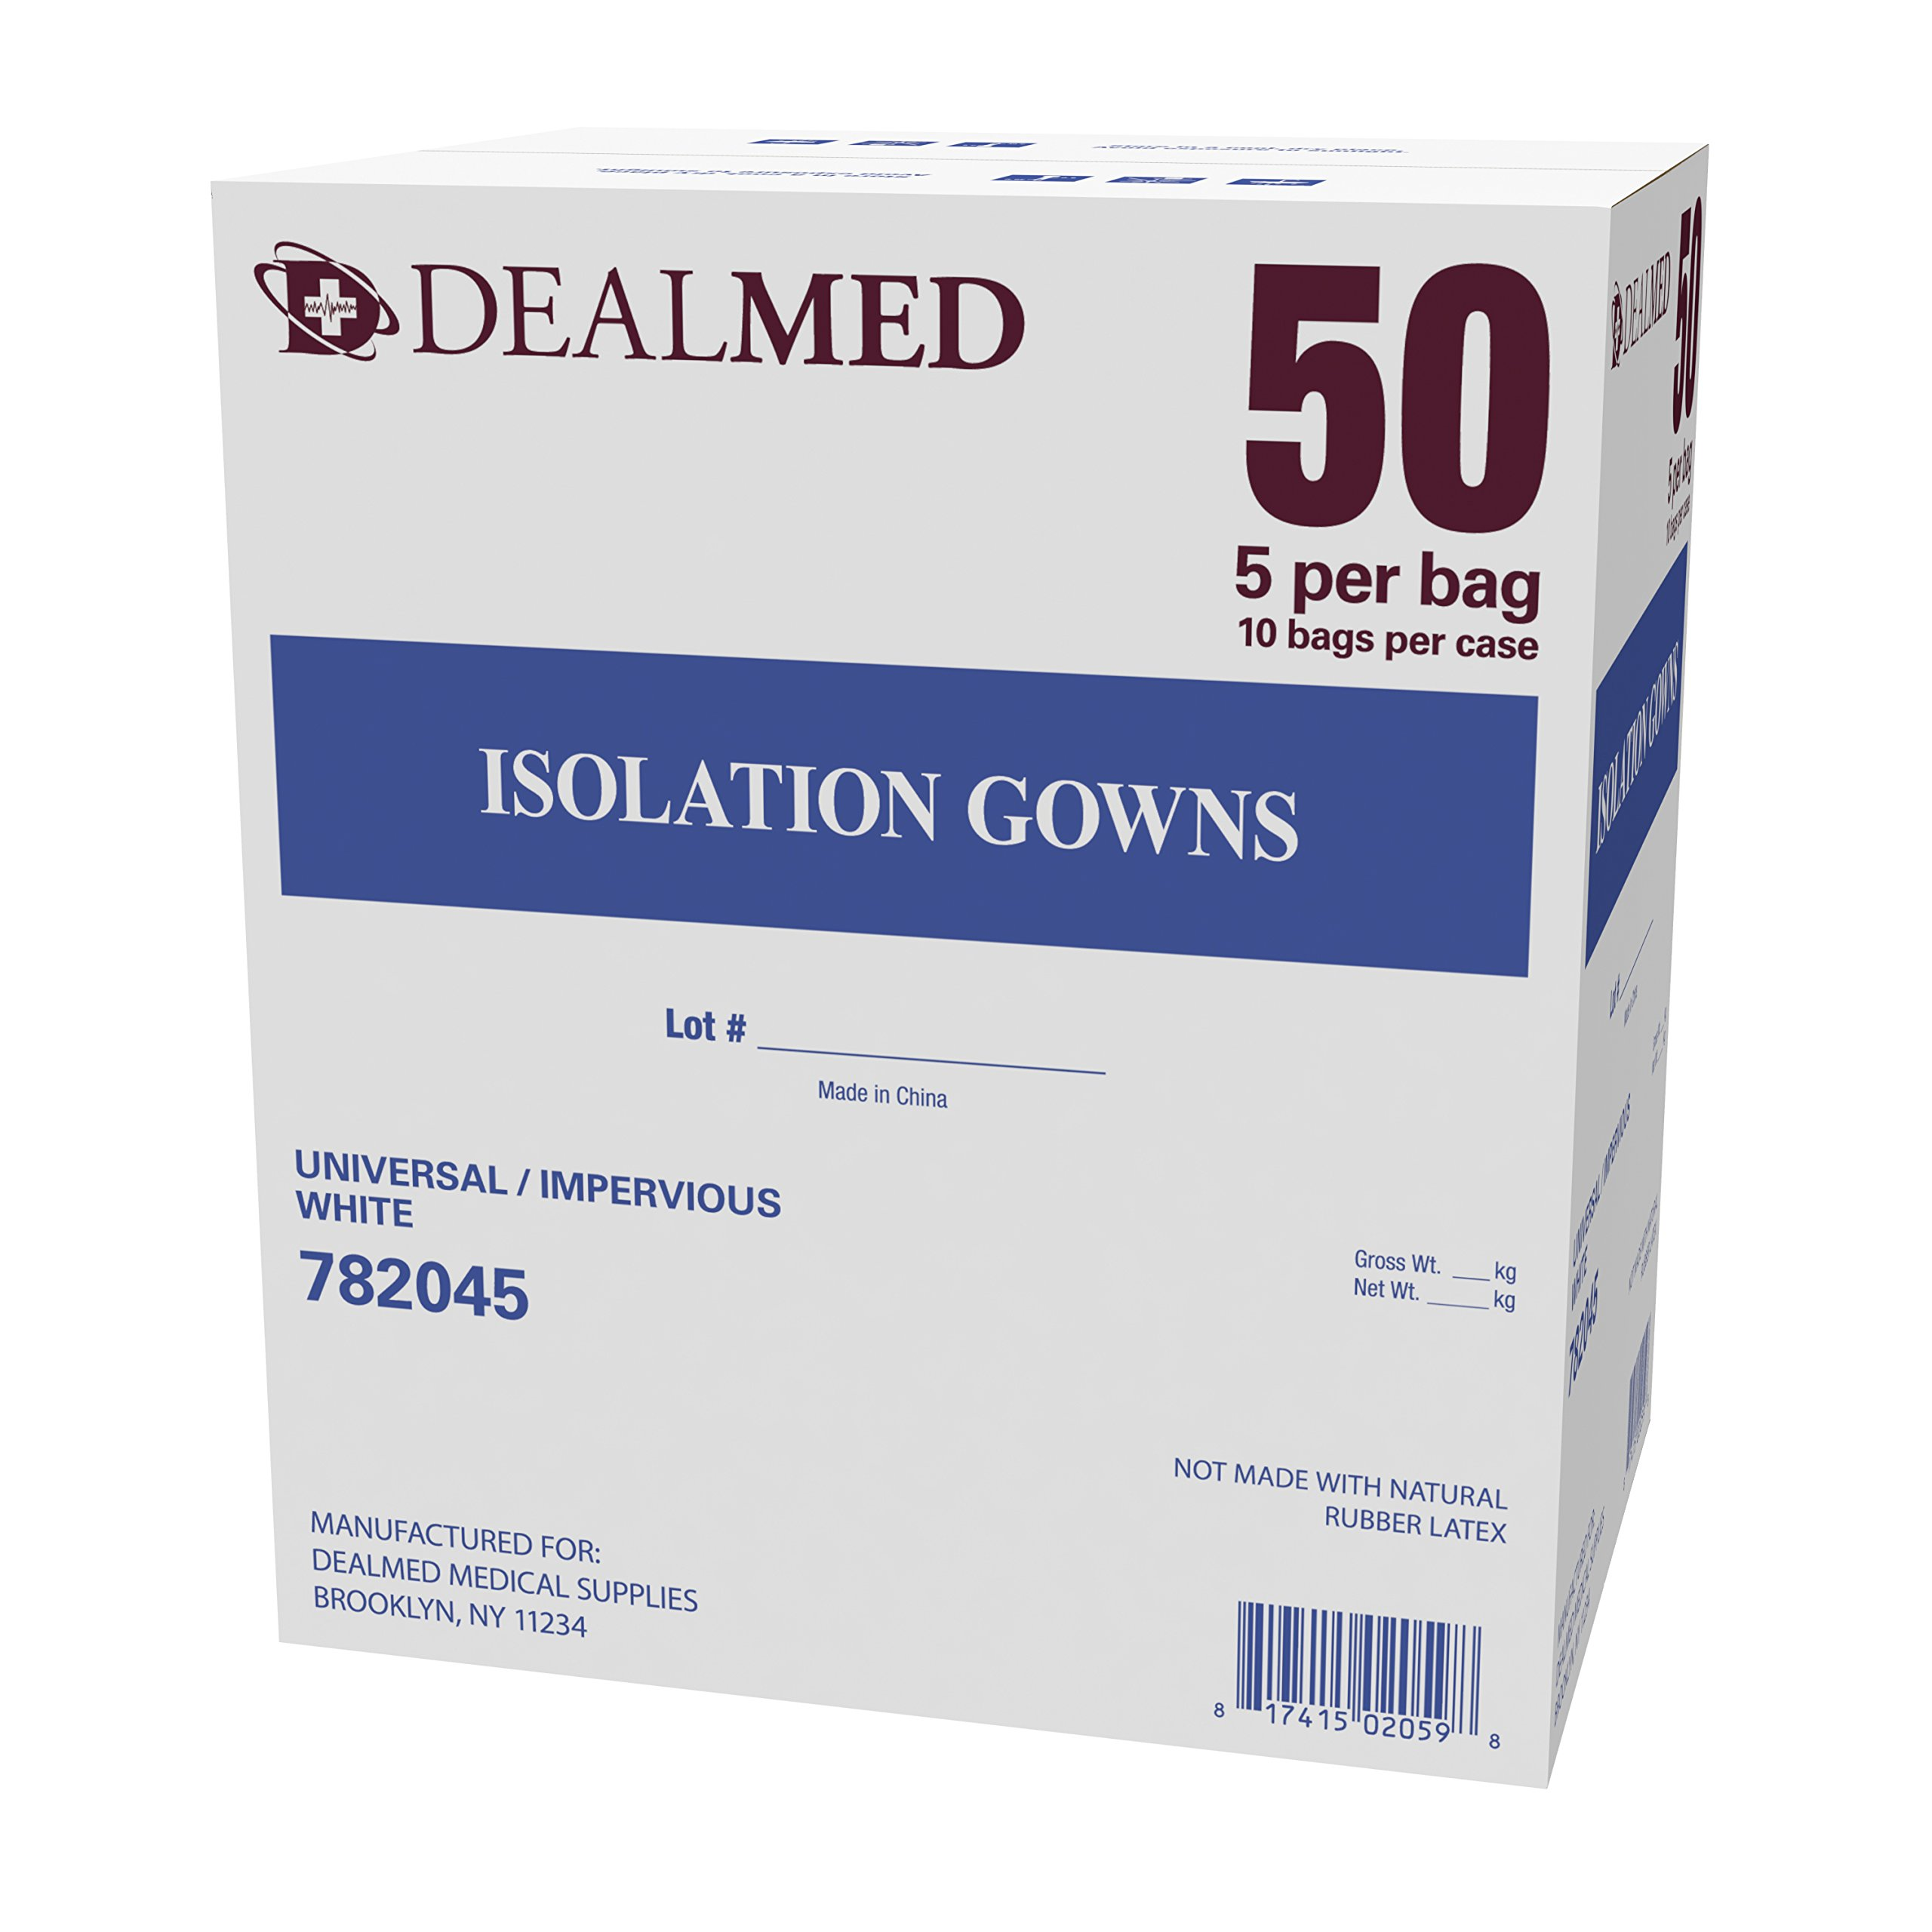 Isolation Gowns, White, Universal Size, Lightweight, Multi-Ply Fluid Resistant, Latex Free - Pack of 50 - Dealmed Brand